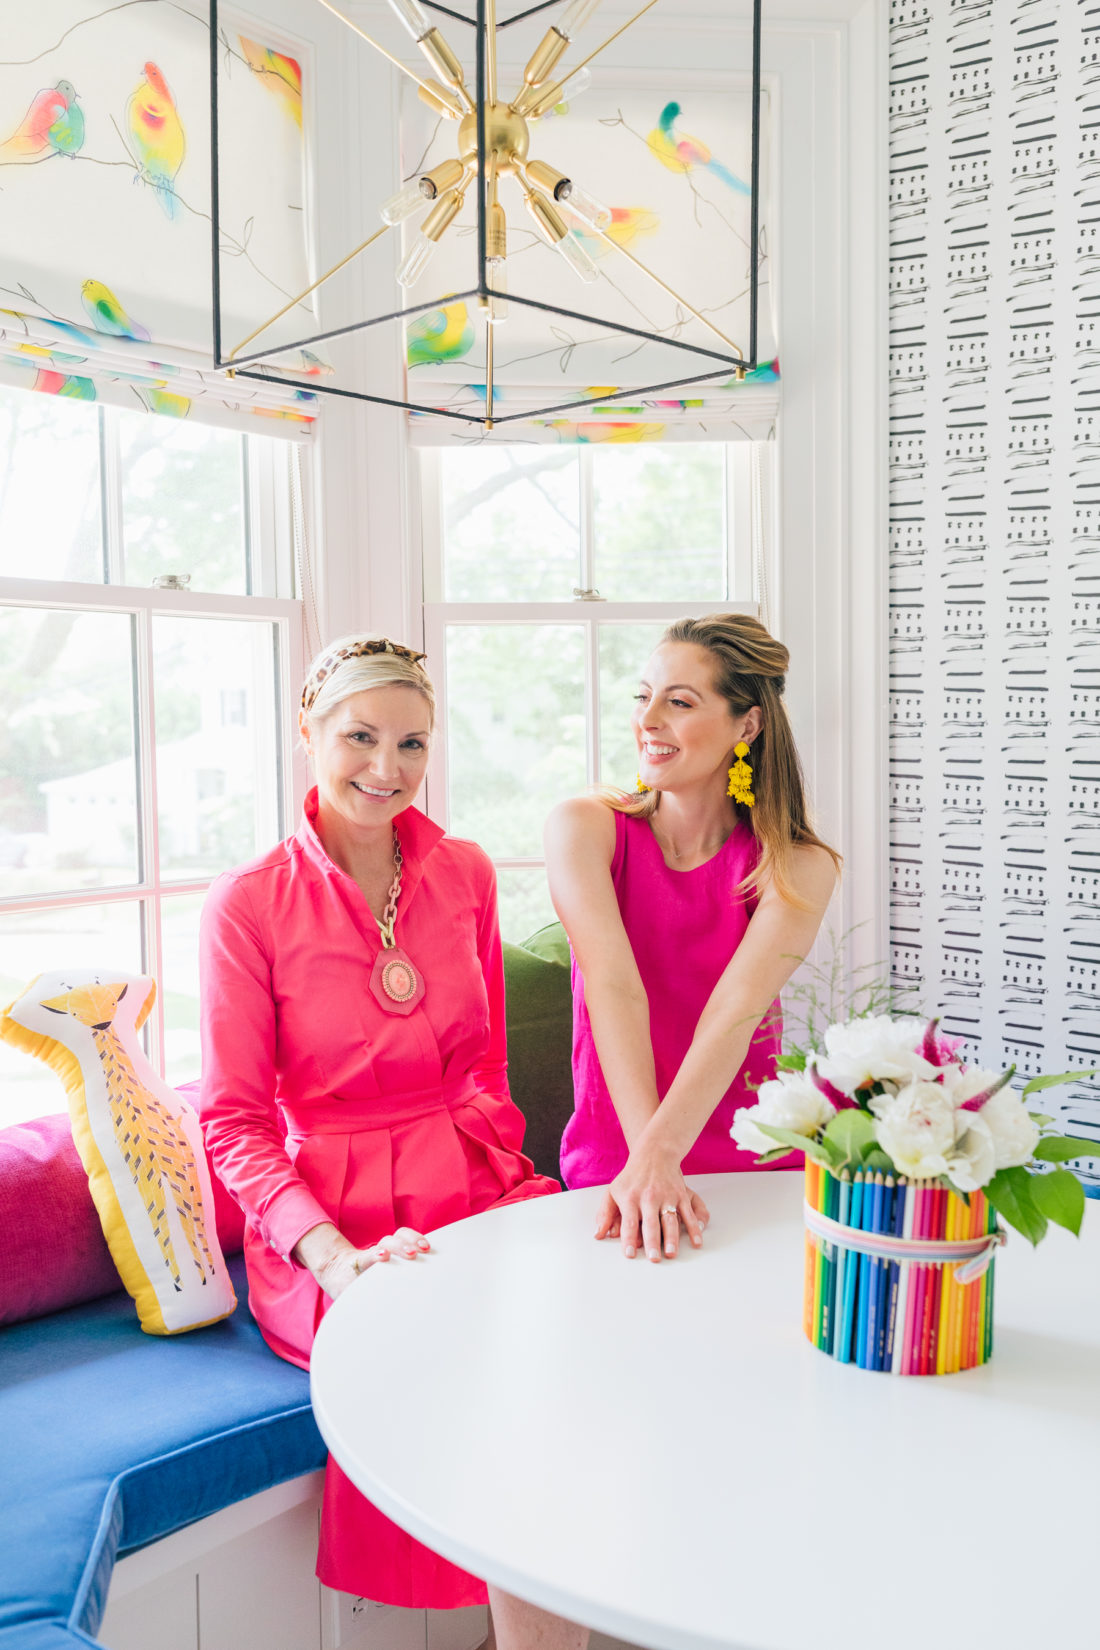 Eva Amurri Martino sits on a banquet with her interior designer Prudence Bailey from Prudence Home & Design